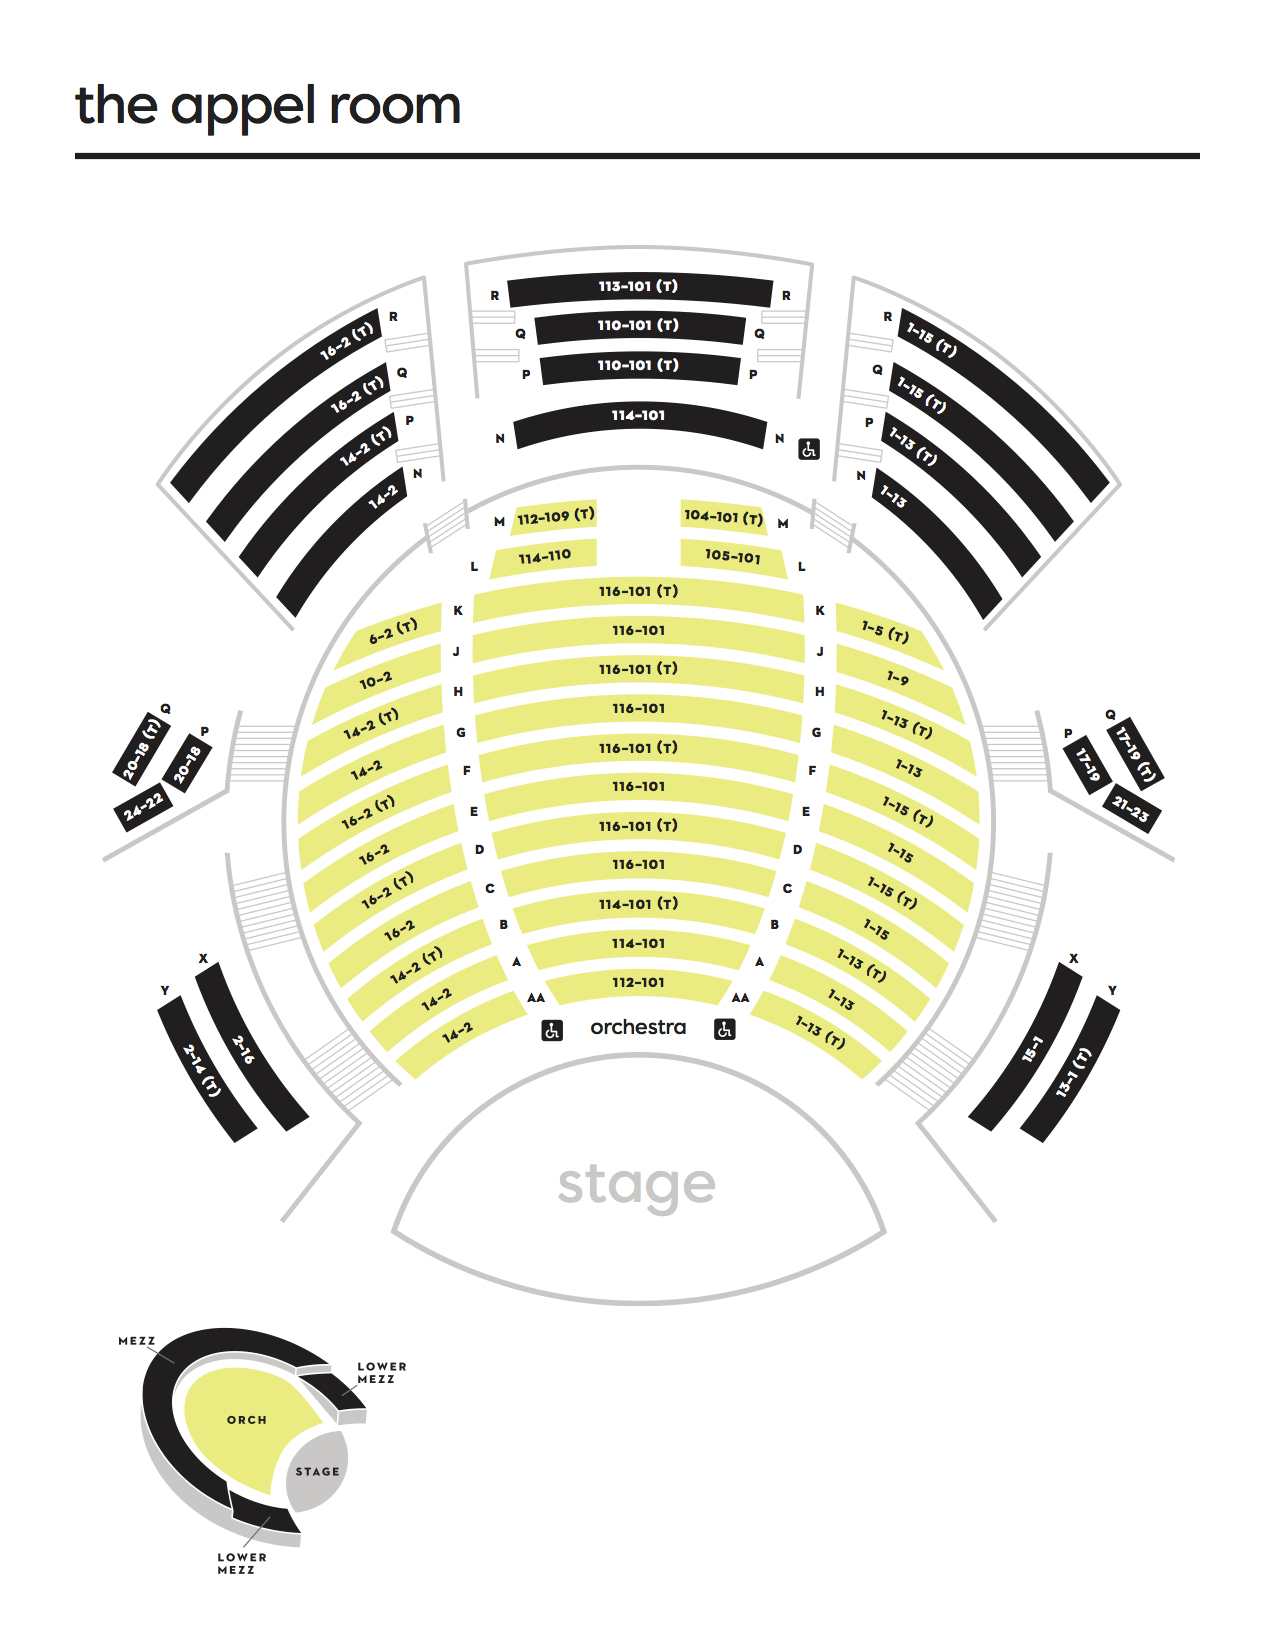 Appel_Room_Jazz_Subscribption_Seating_1